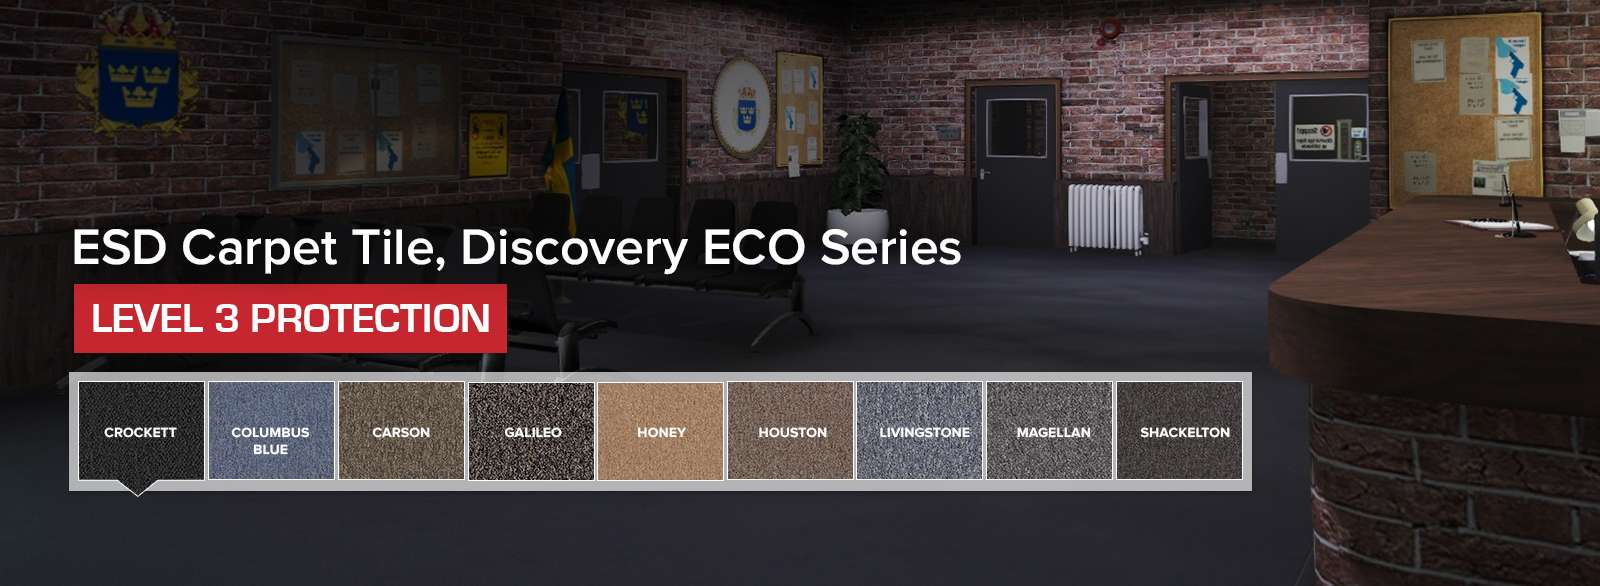 ESD Carpet Tile Discovery ECO Series